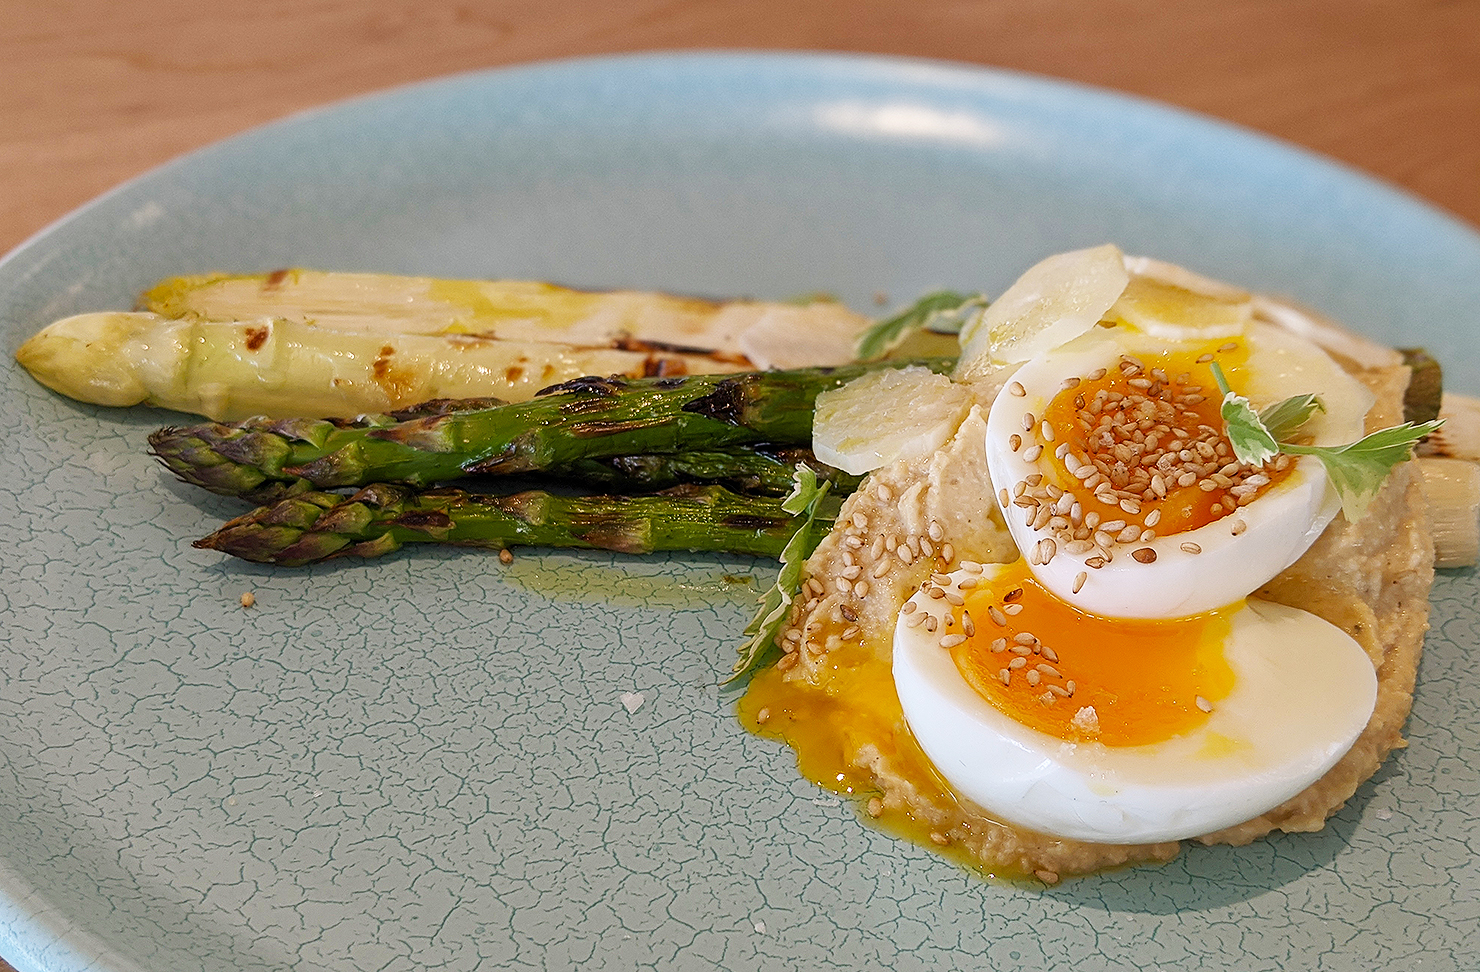 Asparagus with soft boiled eggs with hummus.